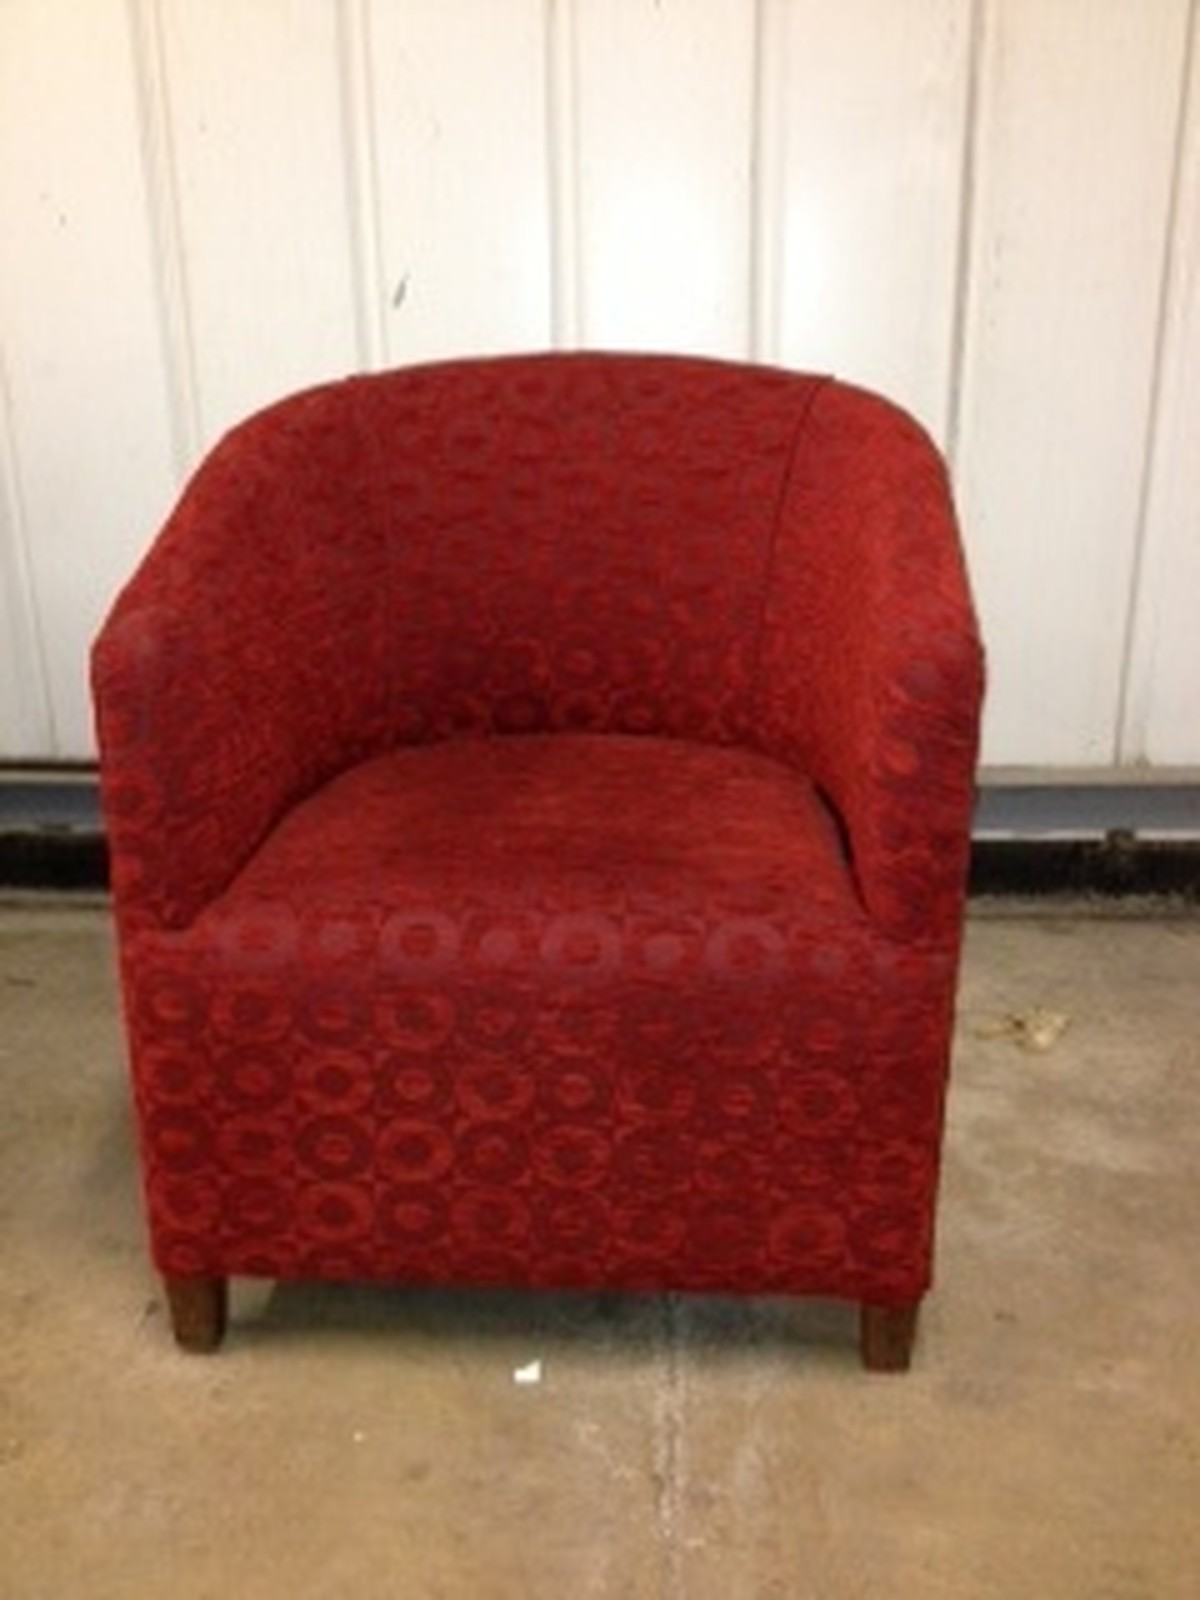 Secondhand Chairs And Tables Tub Chairs 10x Red Tub